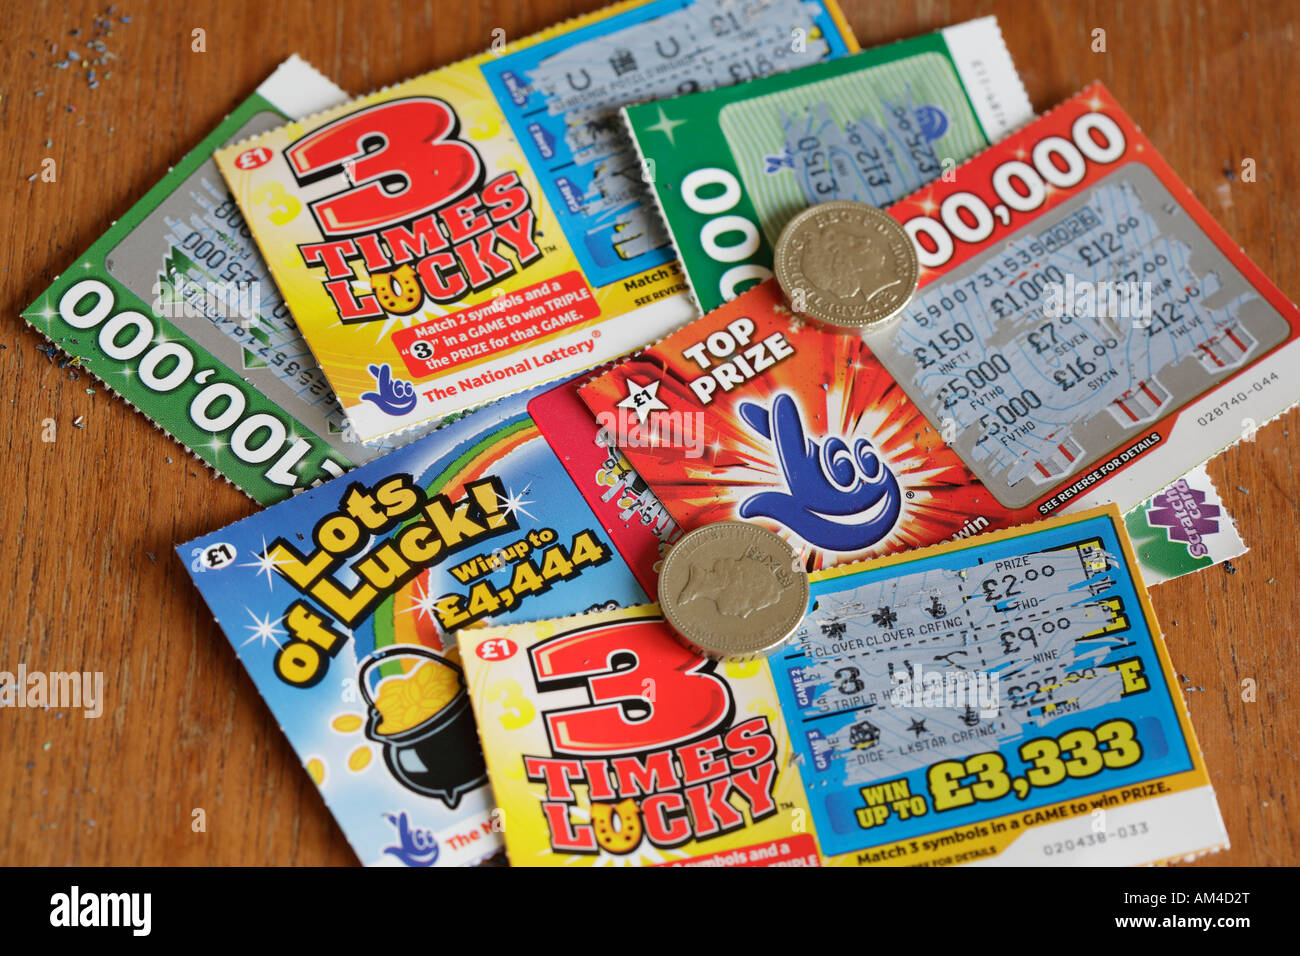 National Lottery/Lotto scratch cards Stock Photo - Alamy